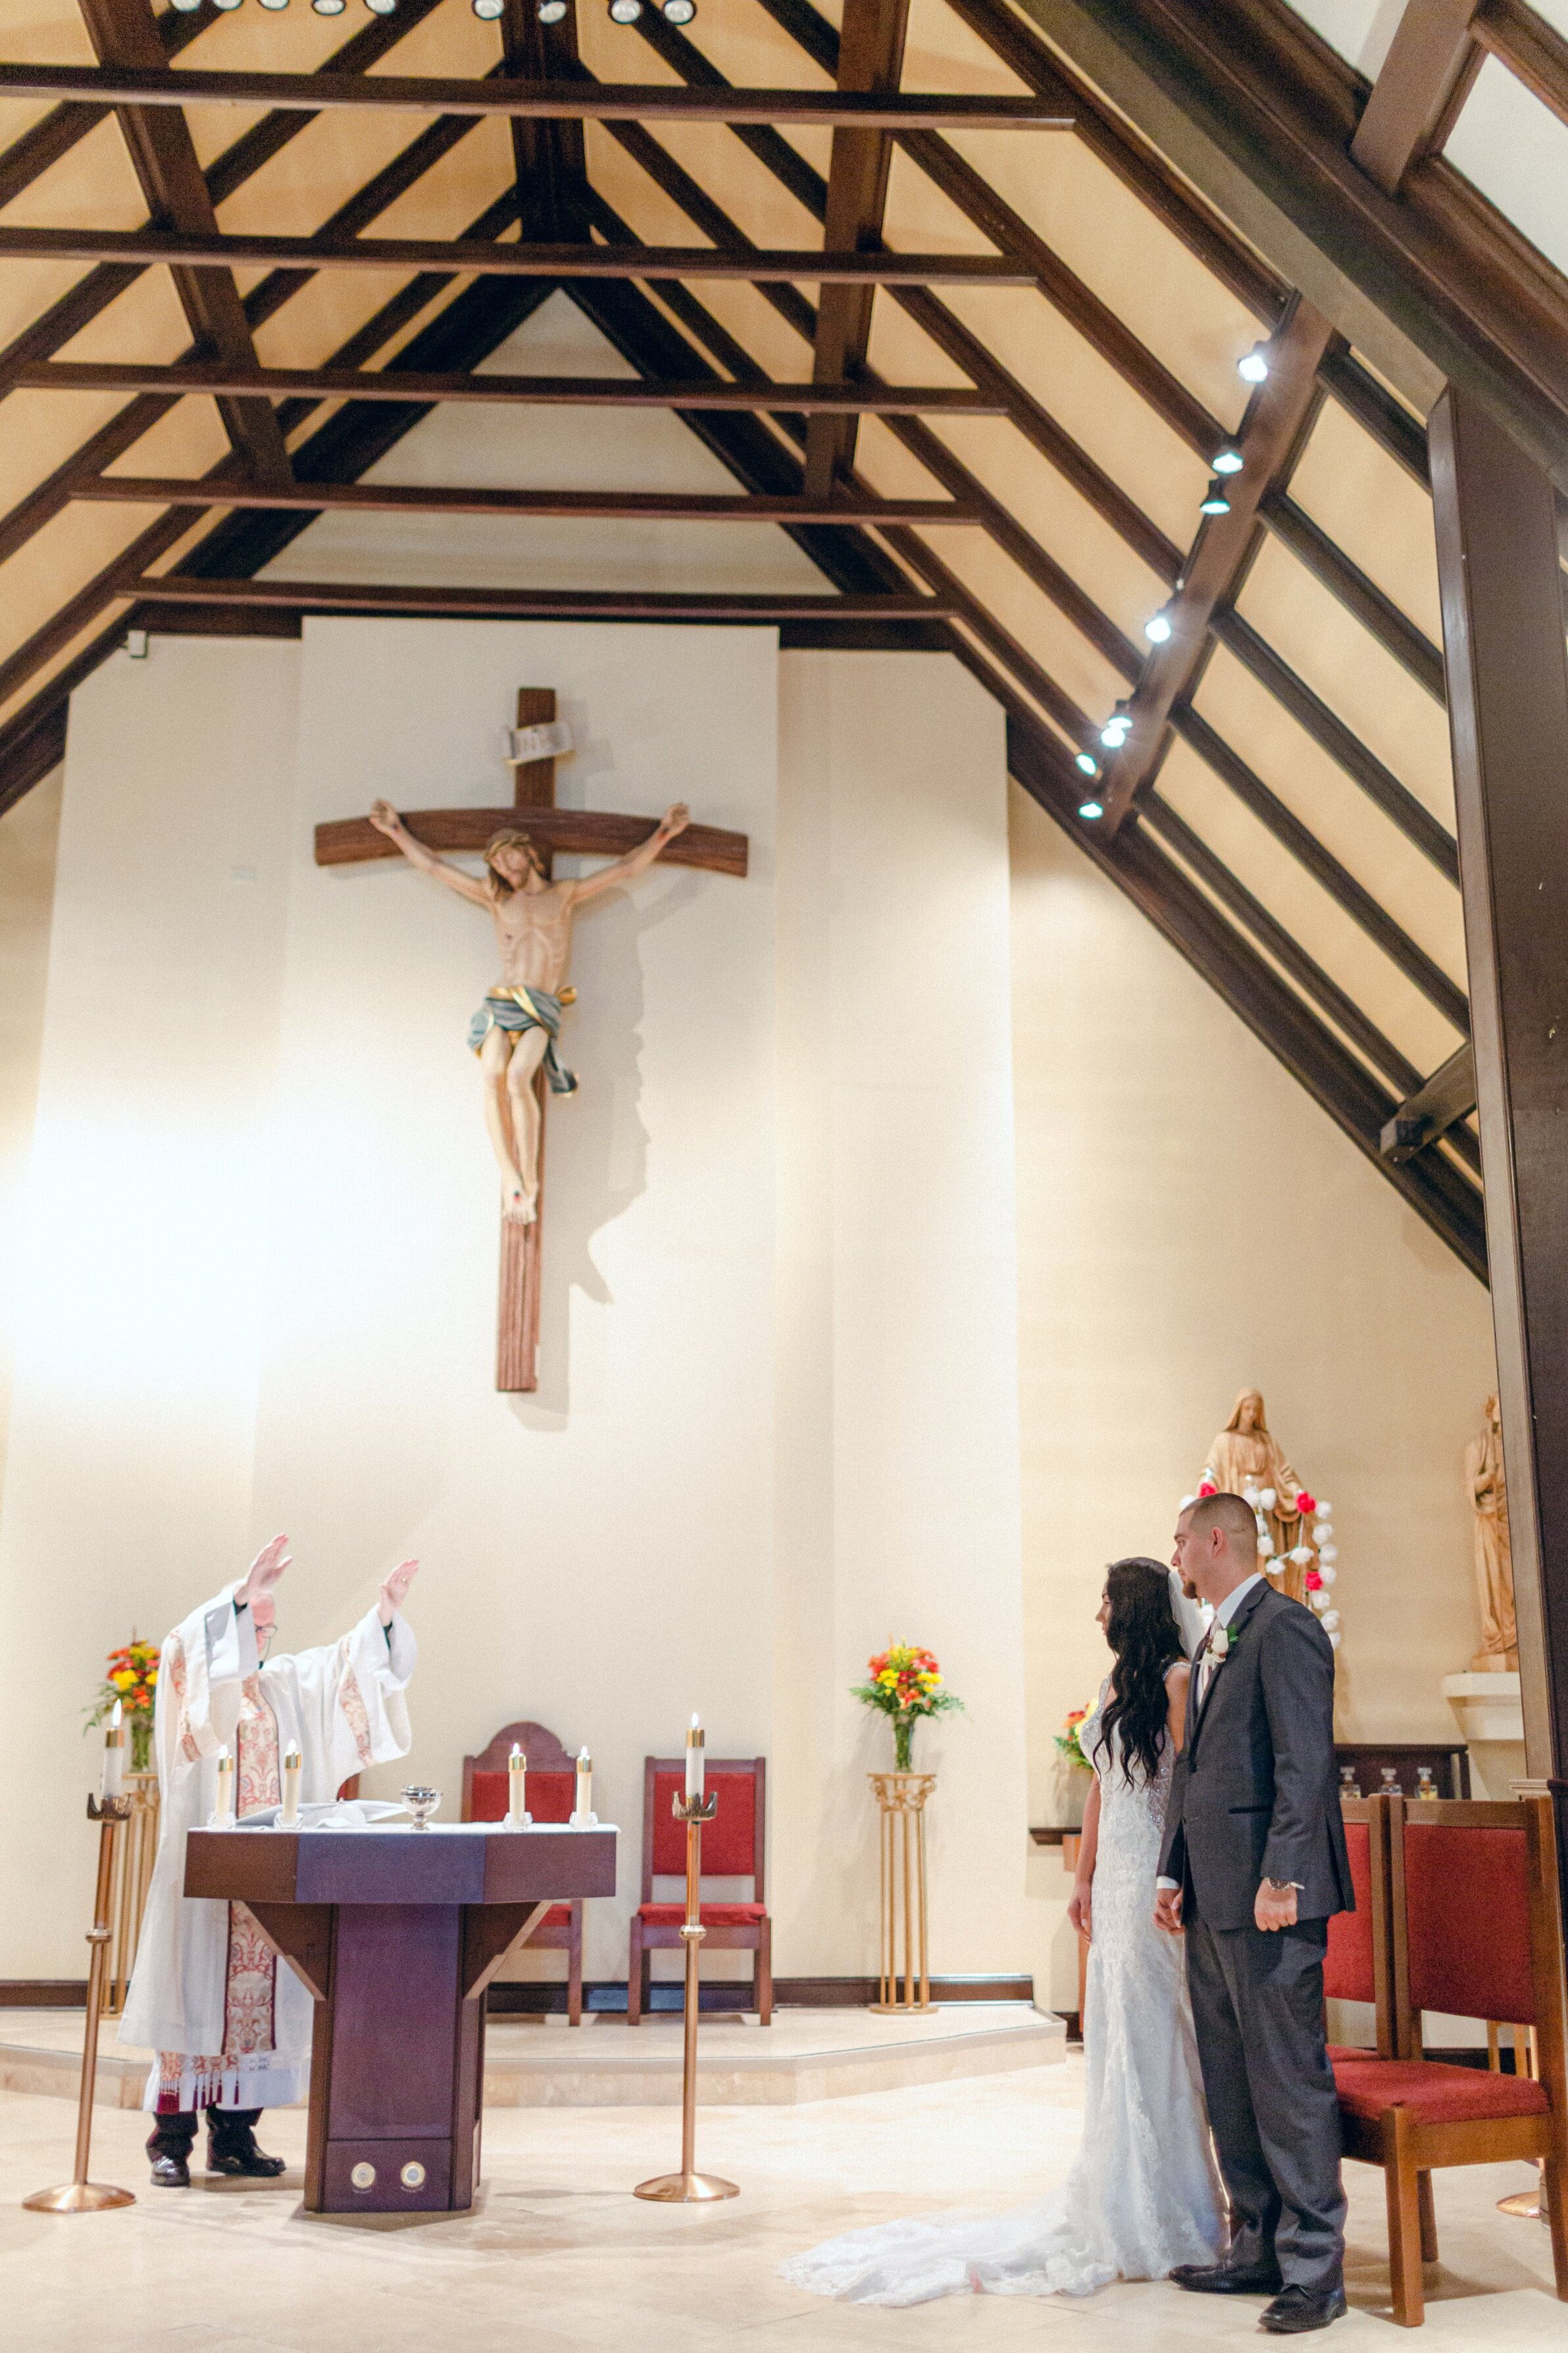 bride+and+groom+being+blessed+at+alter+at+wedding+ceremony